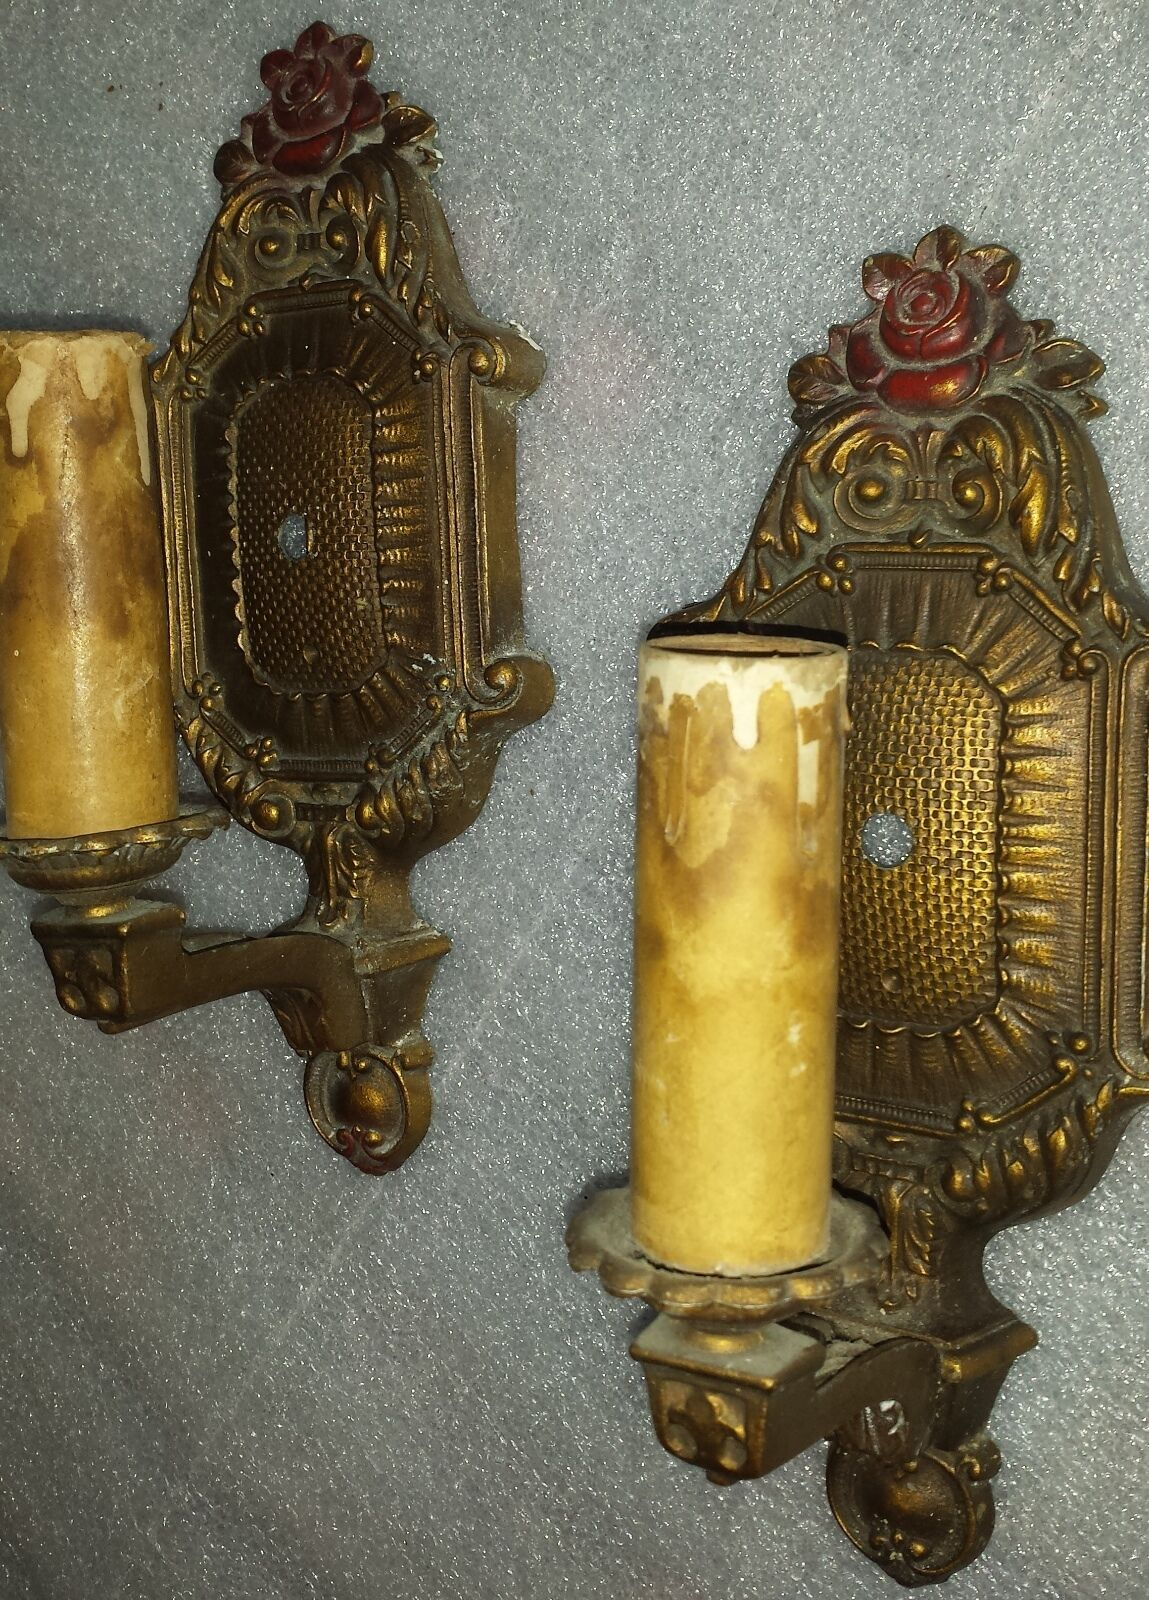 vintage matched pair Wall Sconce lights with embossed rose flower.  Early 1900's